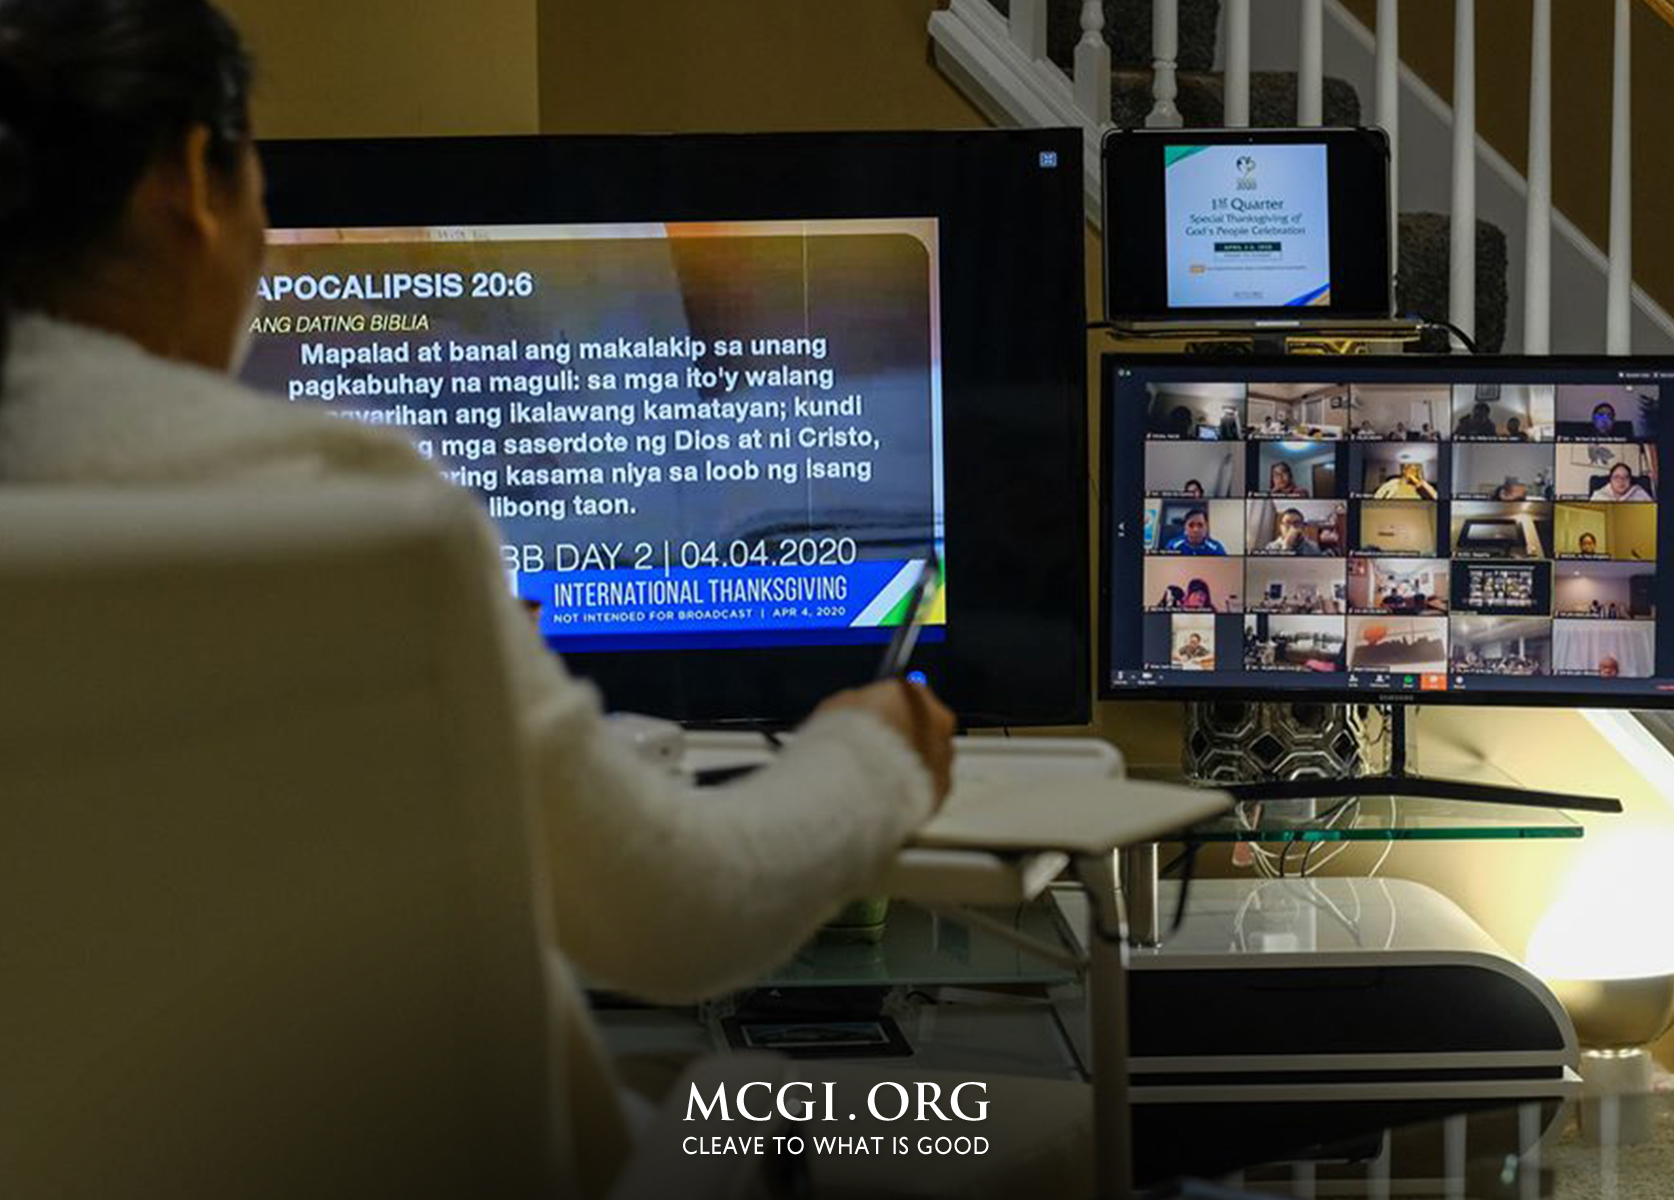 Amidst Covid-19 Threat: MCGI Goes Online for 1st Quarter Thanksgiving